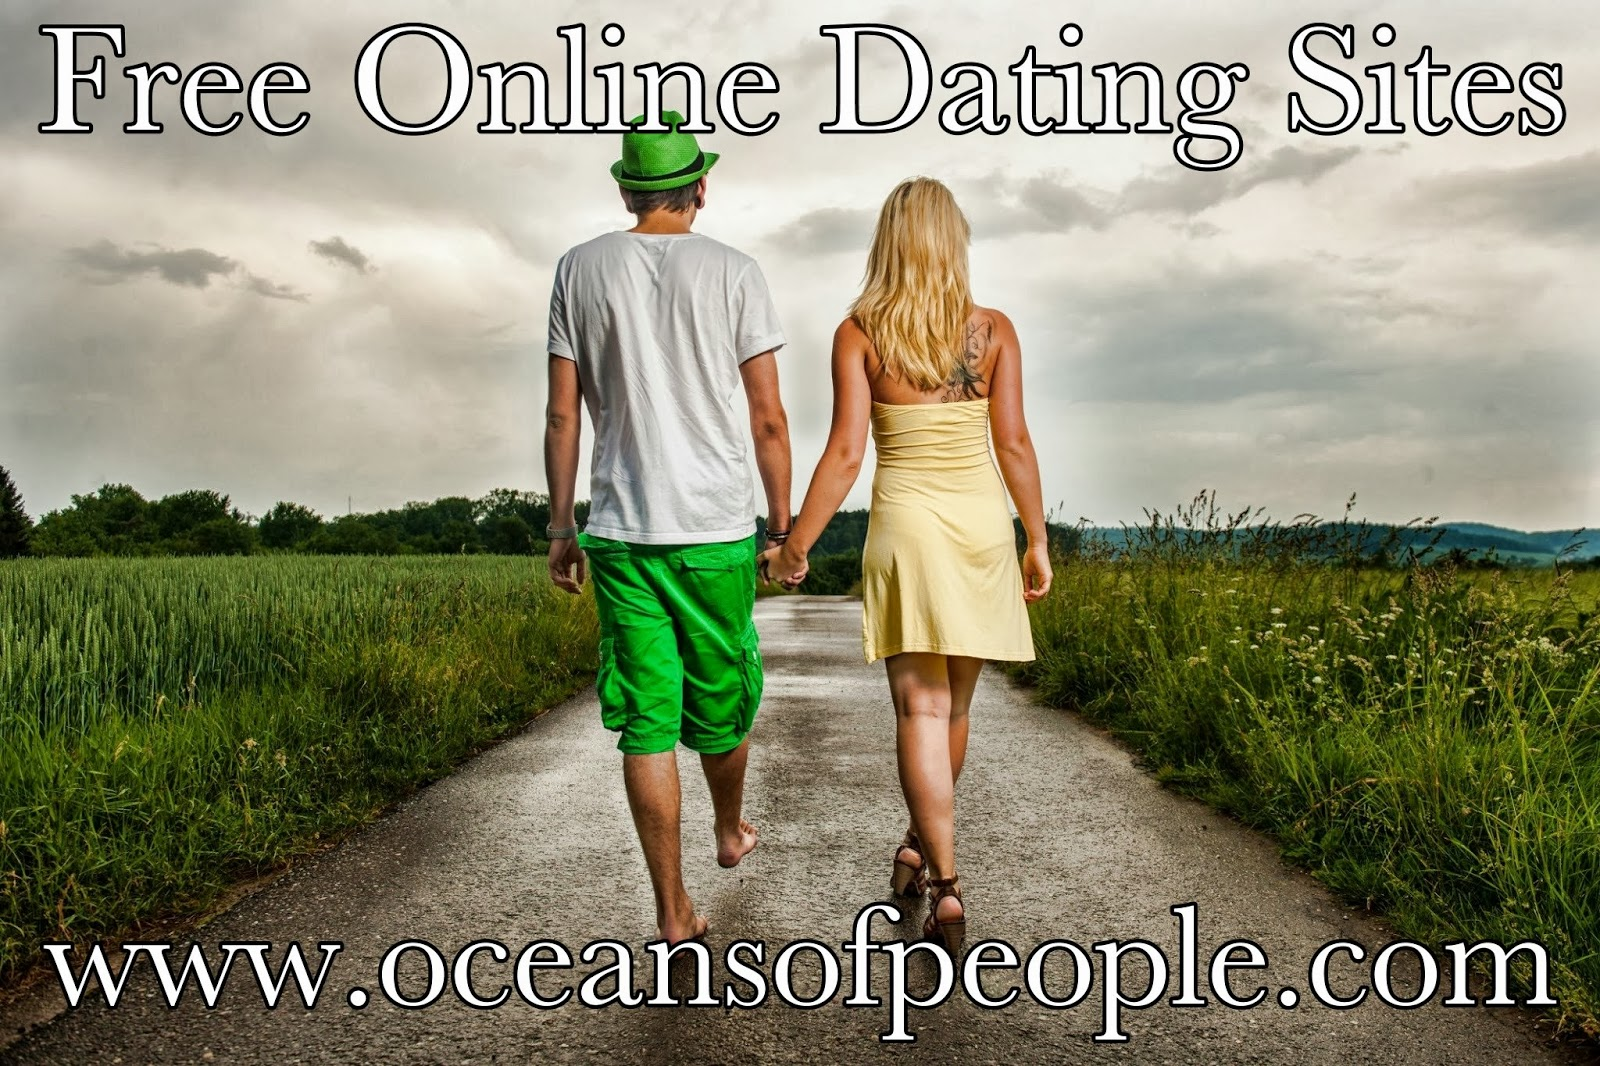 Free disceet dating sites